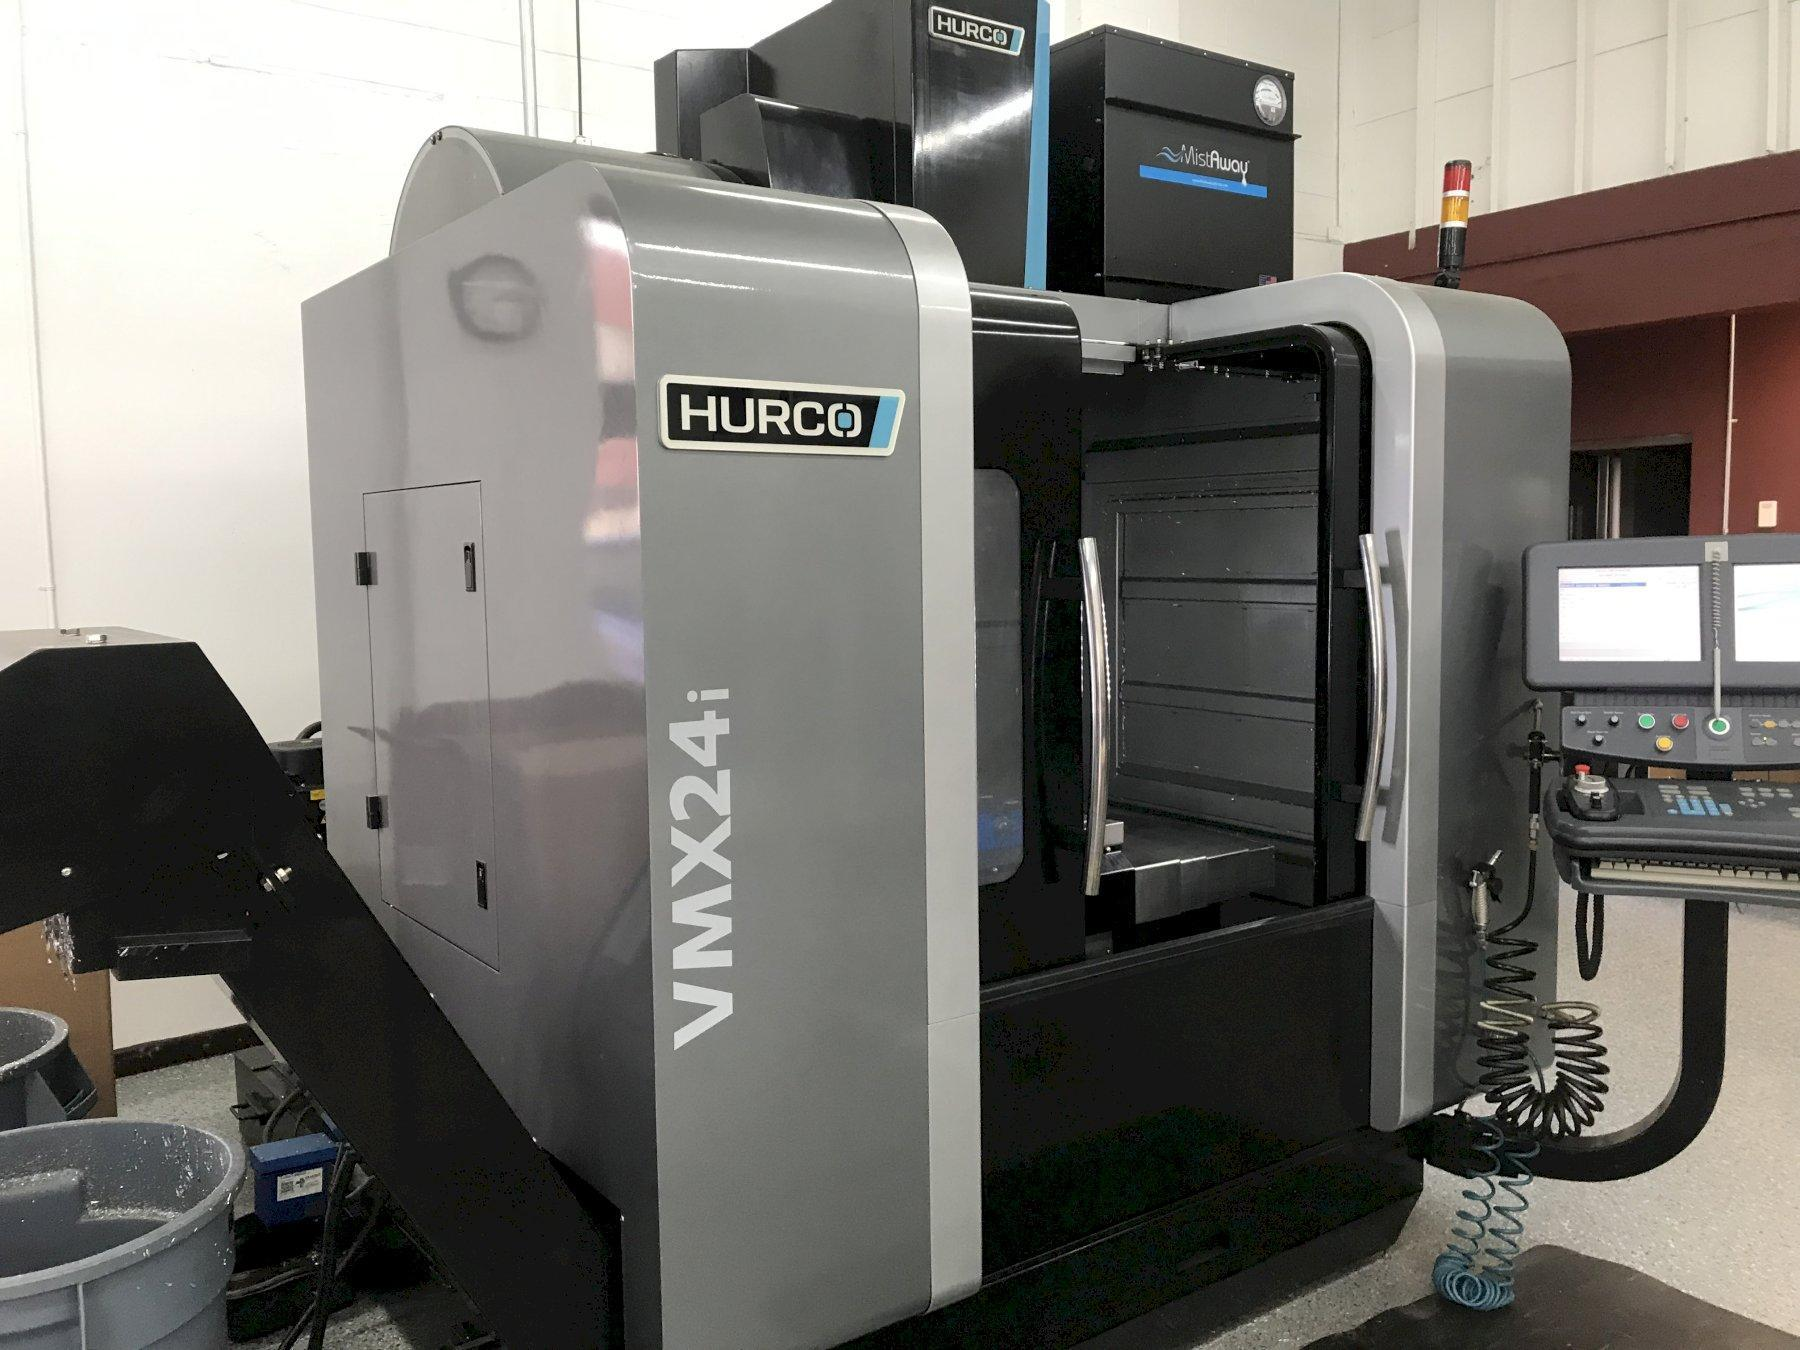 Hurco VMX24i CNC Vertical Machining Center, Winmax, 24